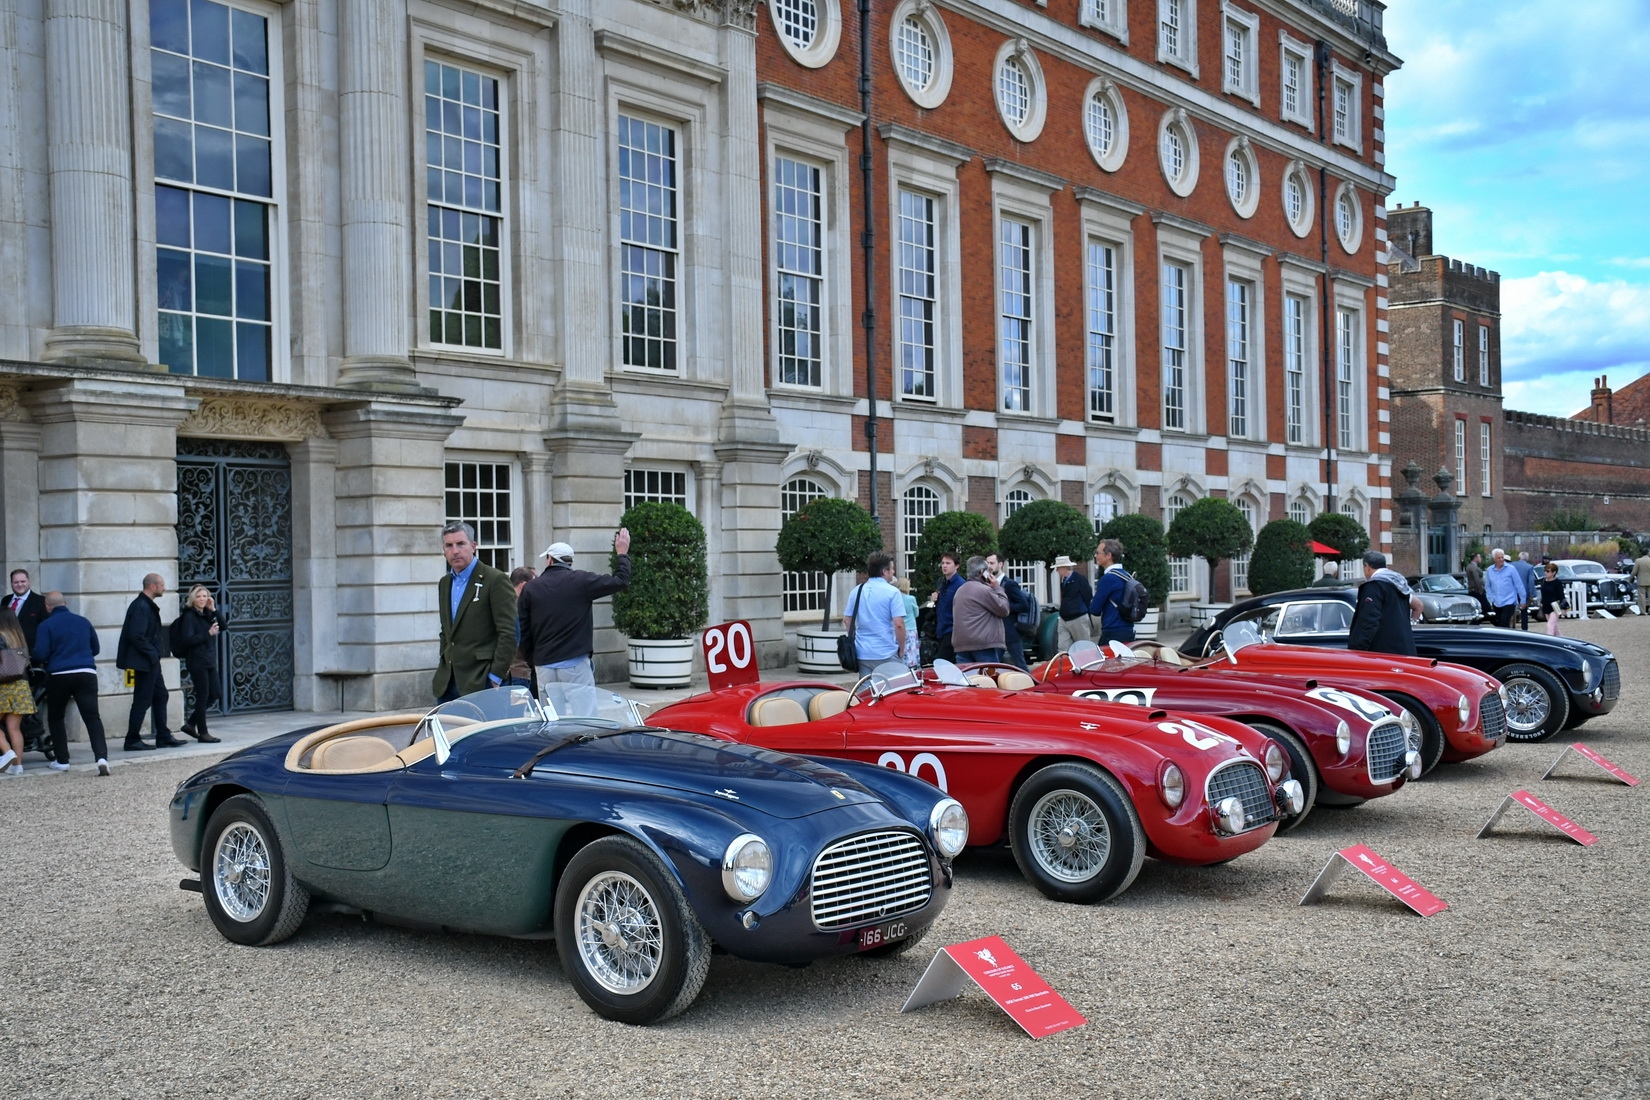 a set of 4 Ferraris 166MM and a 212 Export Berlinetta Touring standing side by side in front of Hampton Court Palace